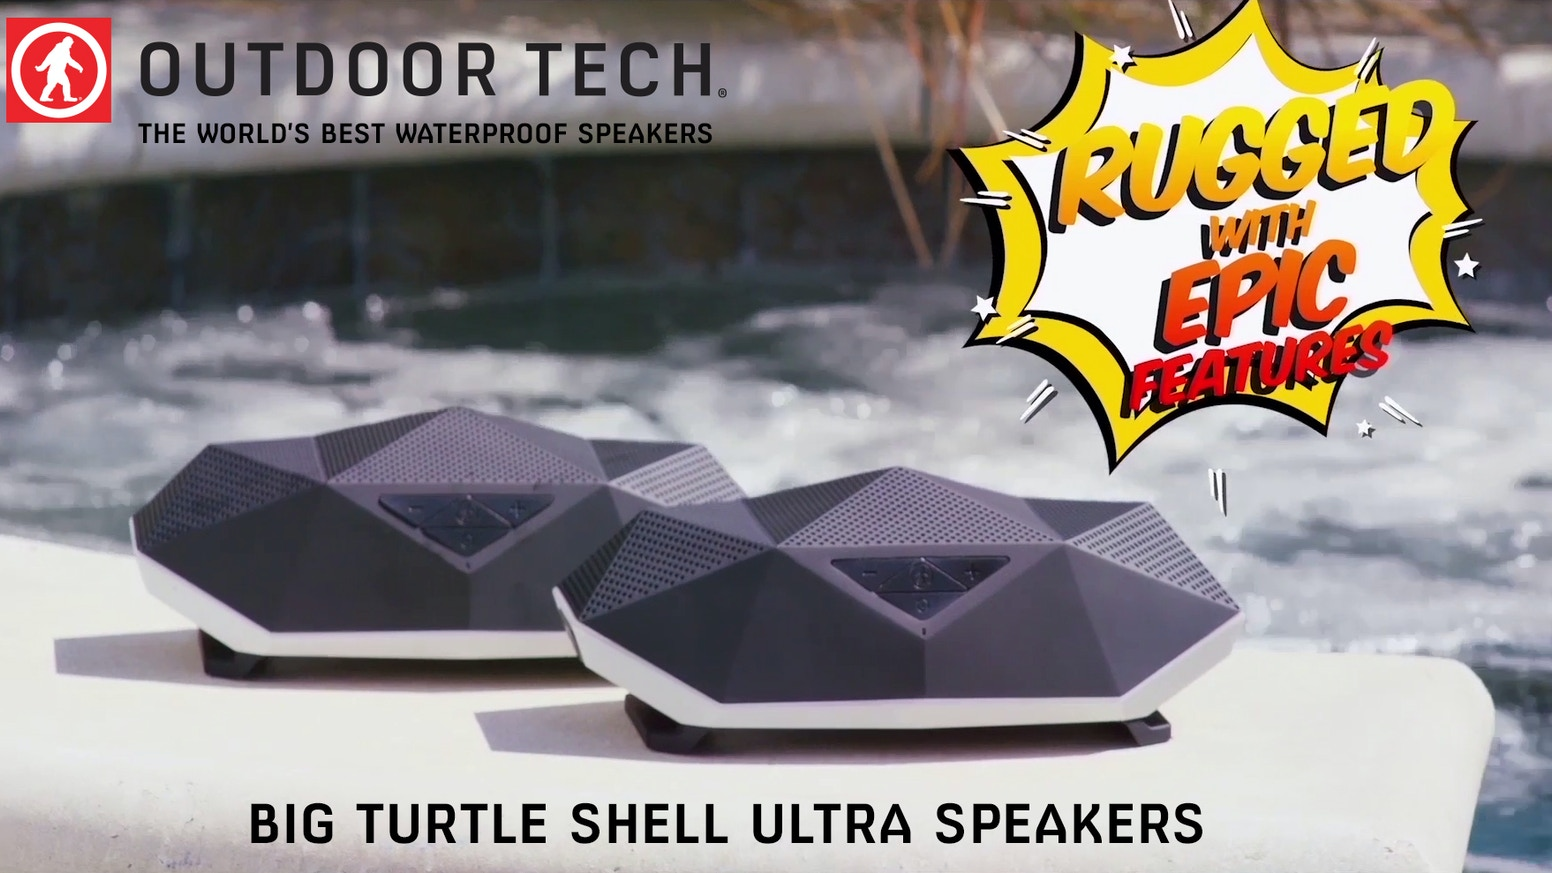 The best waterproof Bluetooth speakers (pair two together) ever created, the Big Turtle Shell Ultra has a power bank and lantern.